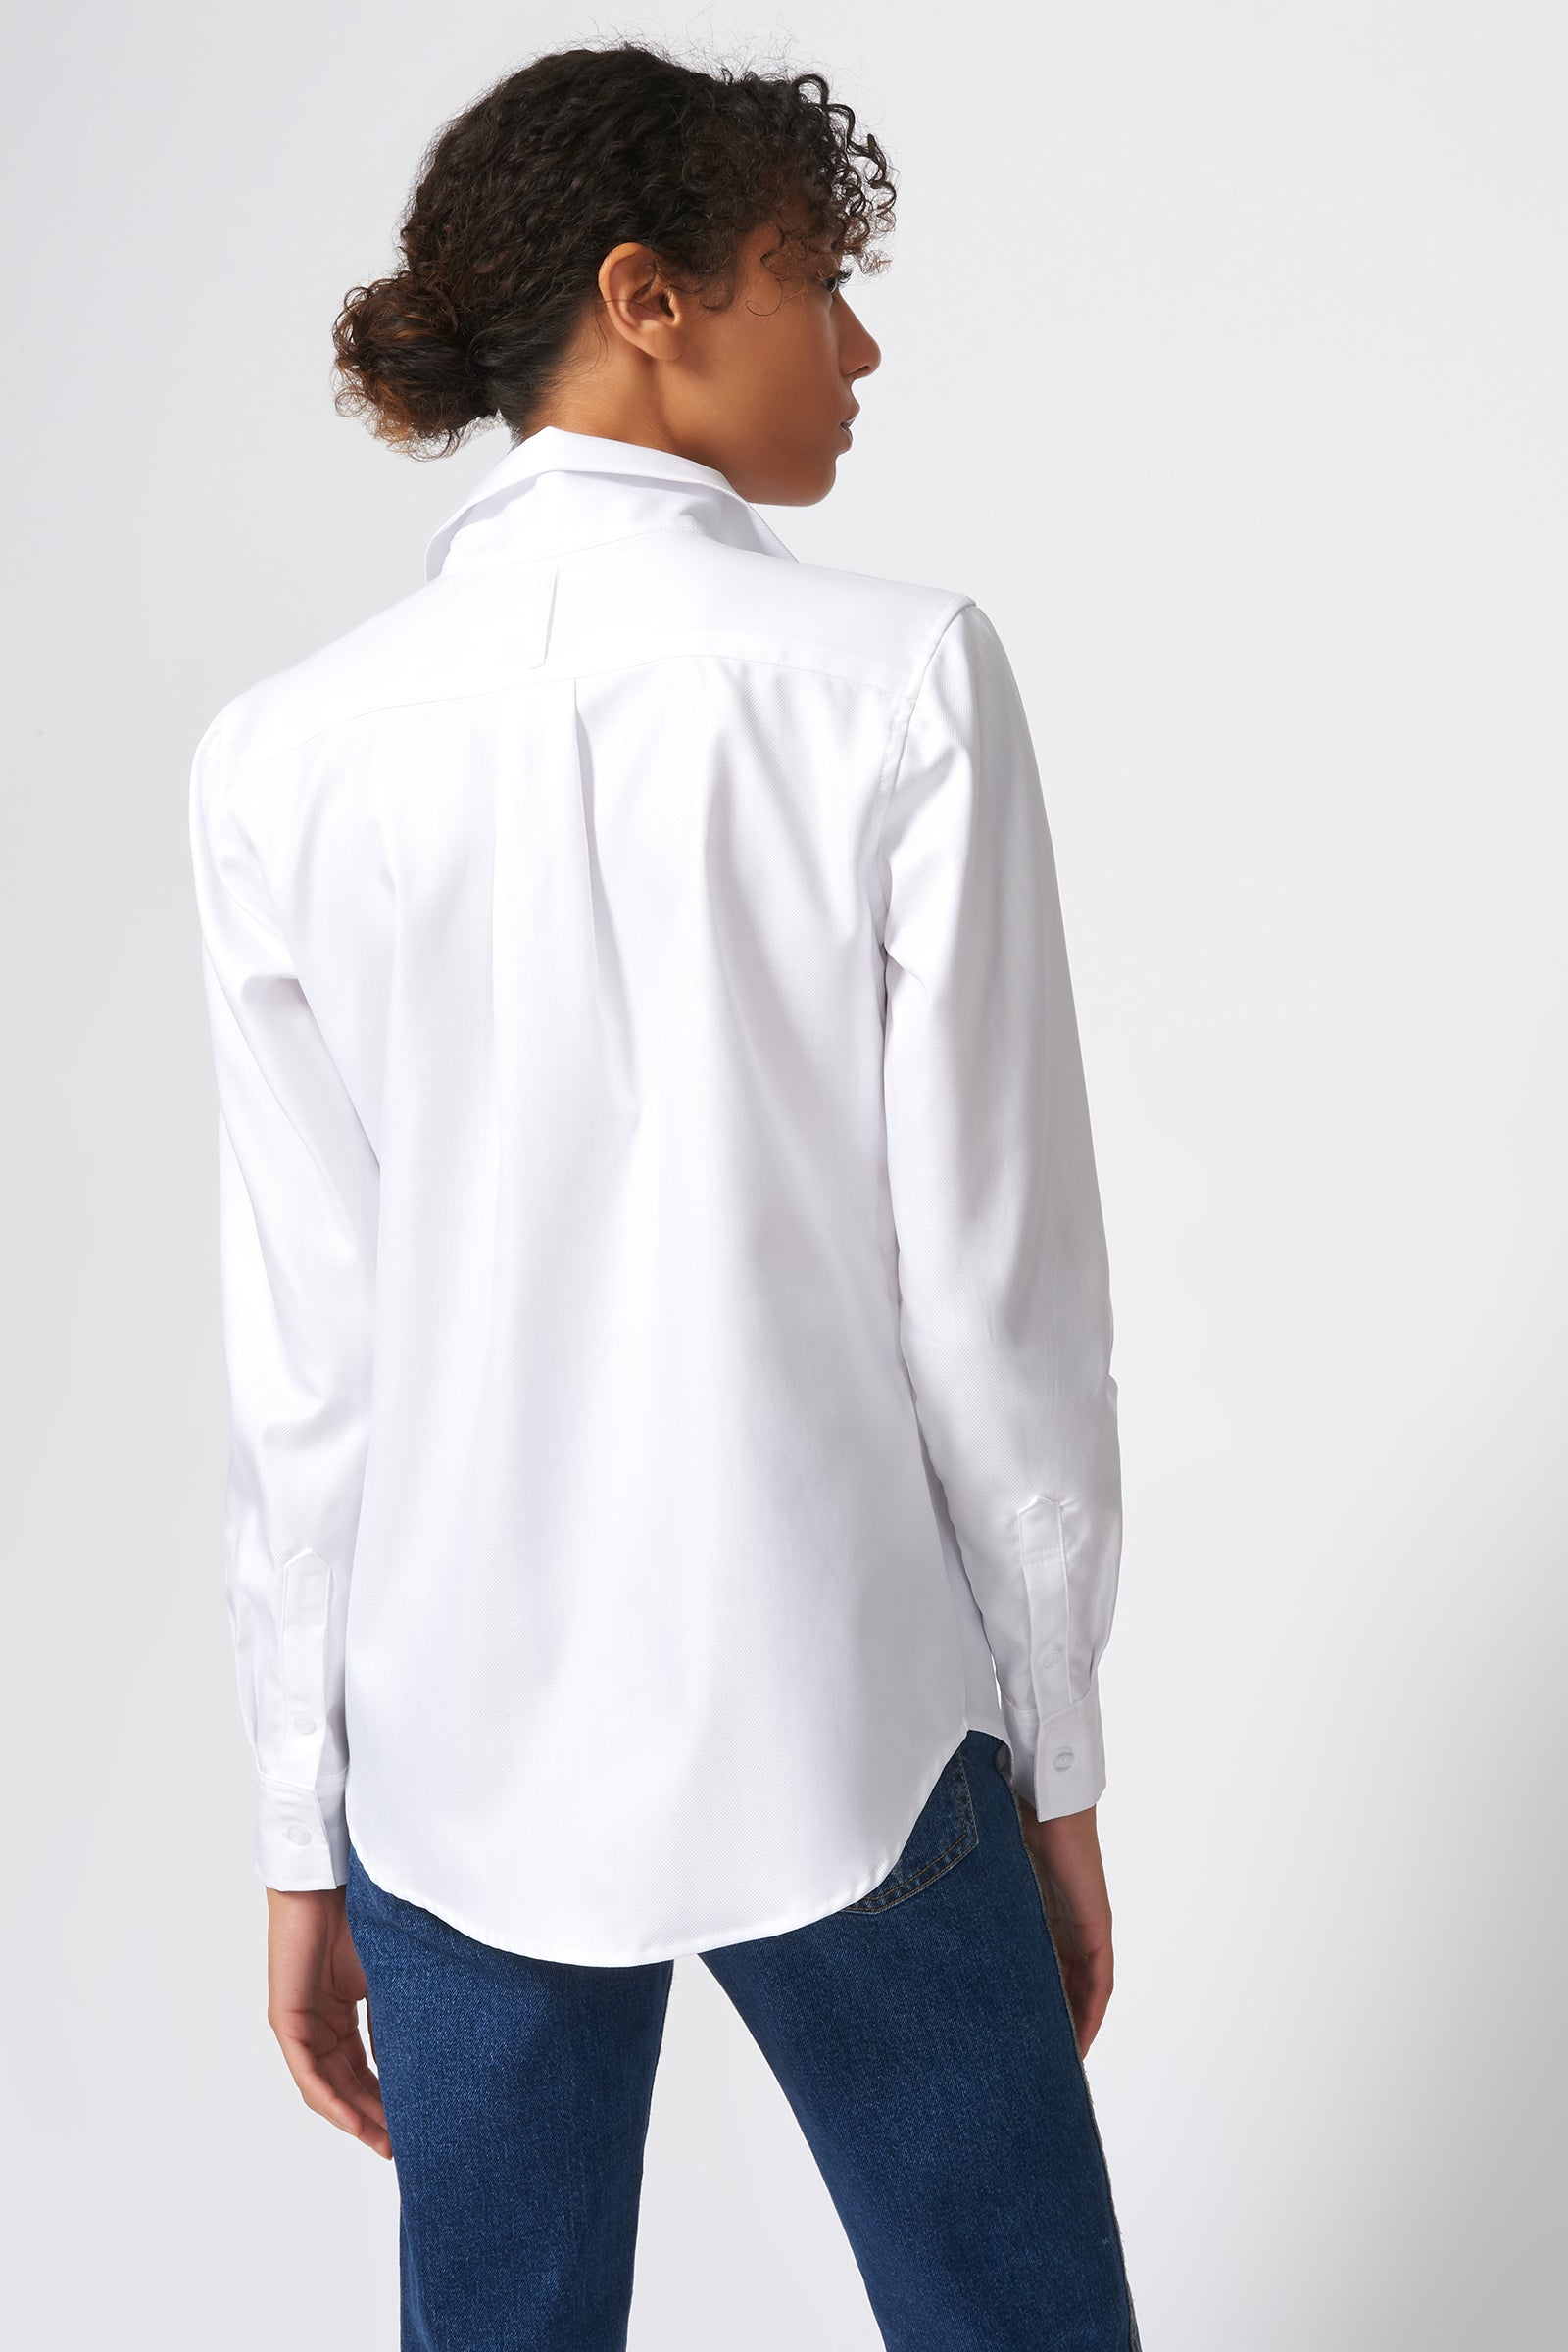 Kal Rieman Ginna Box Pleat Shirt in White Fine Herringbone on Model Back View